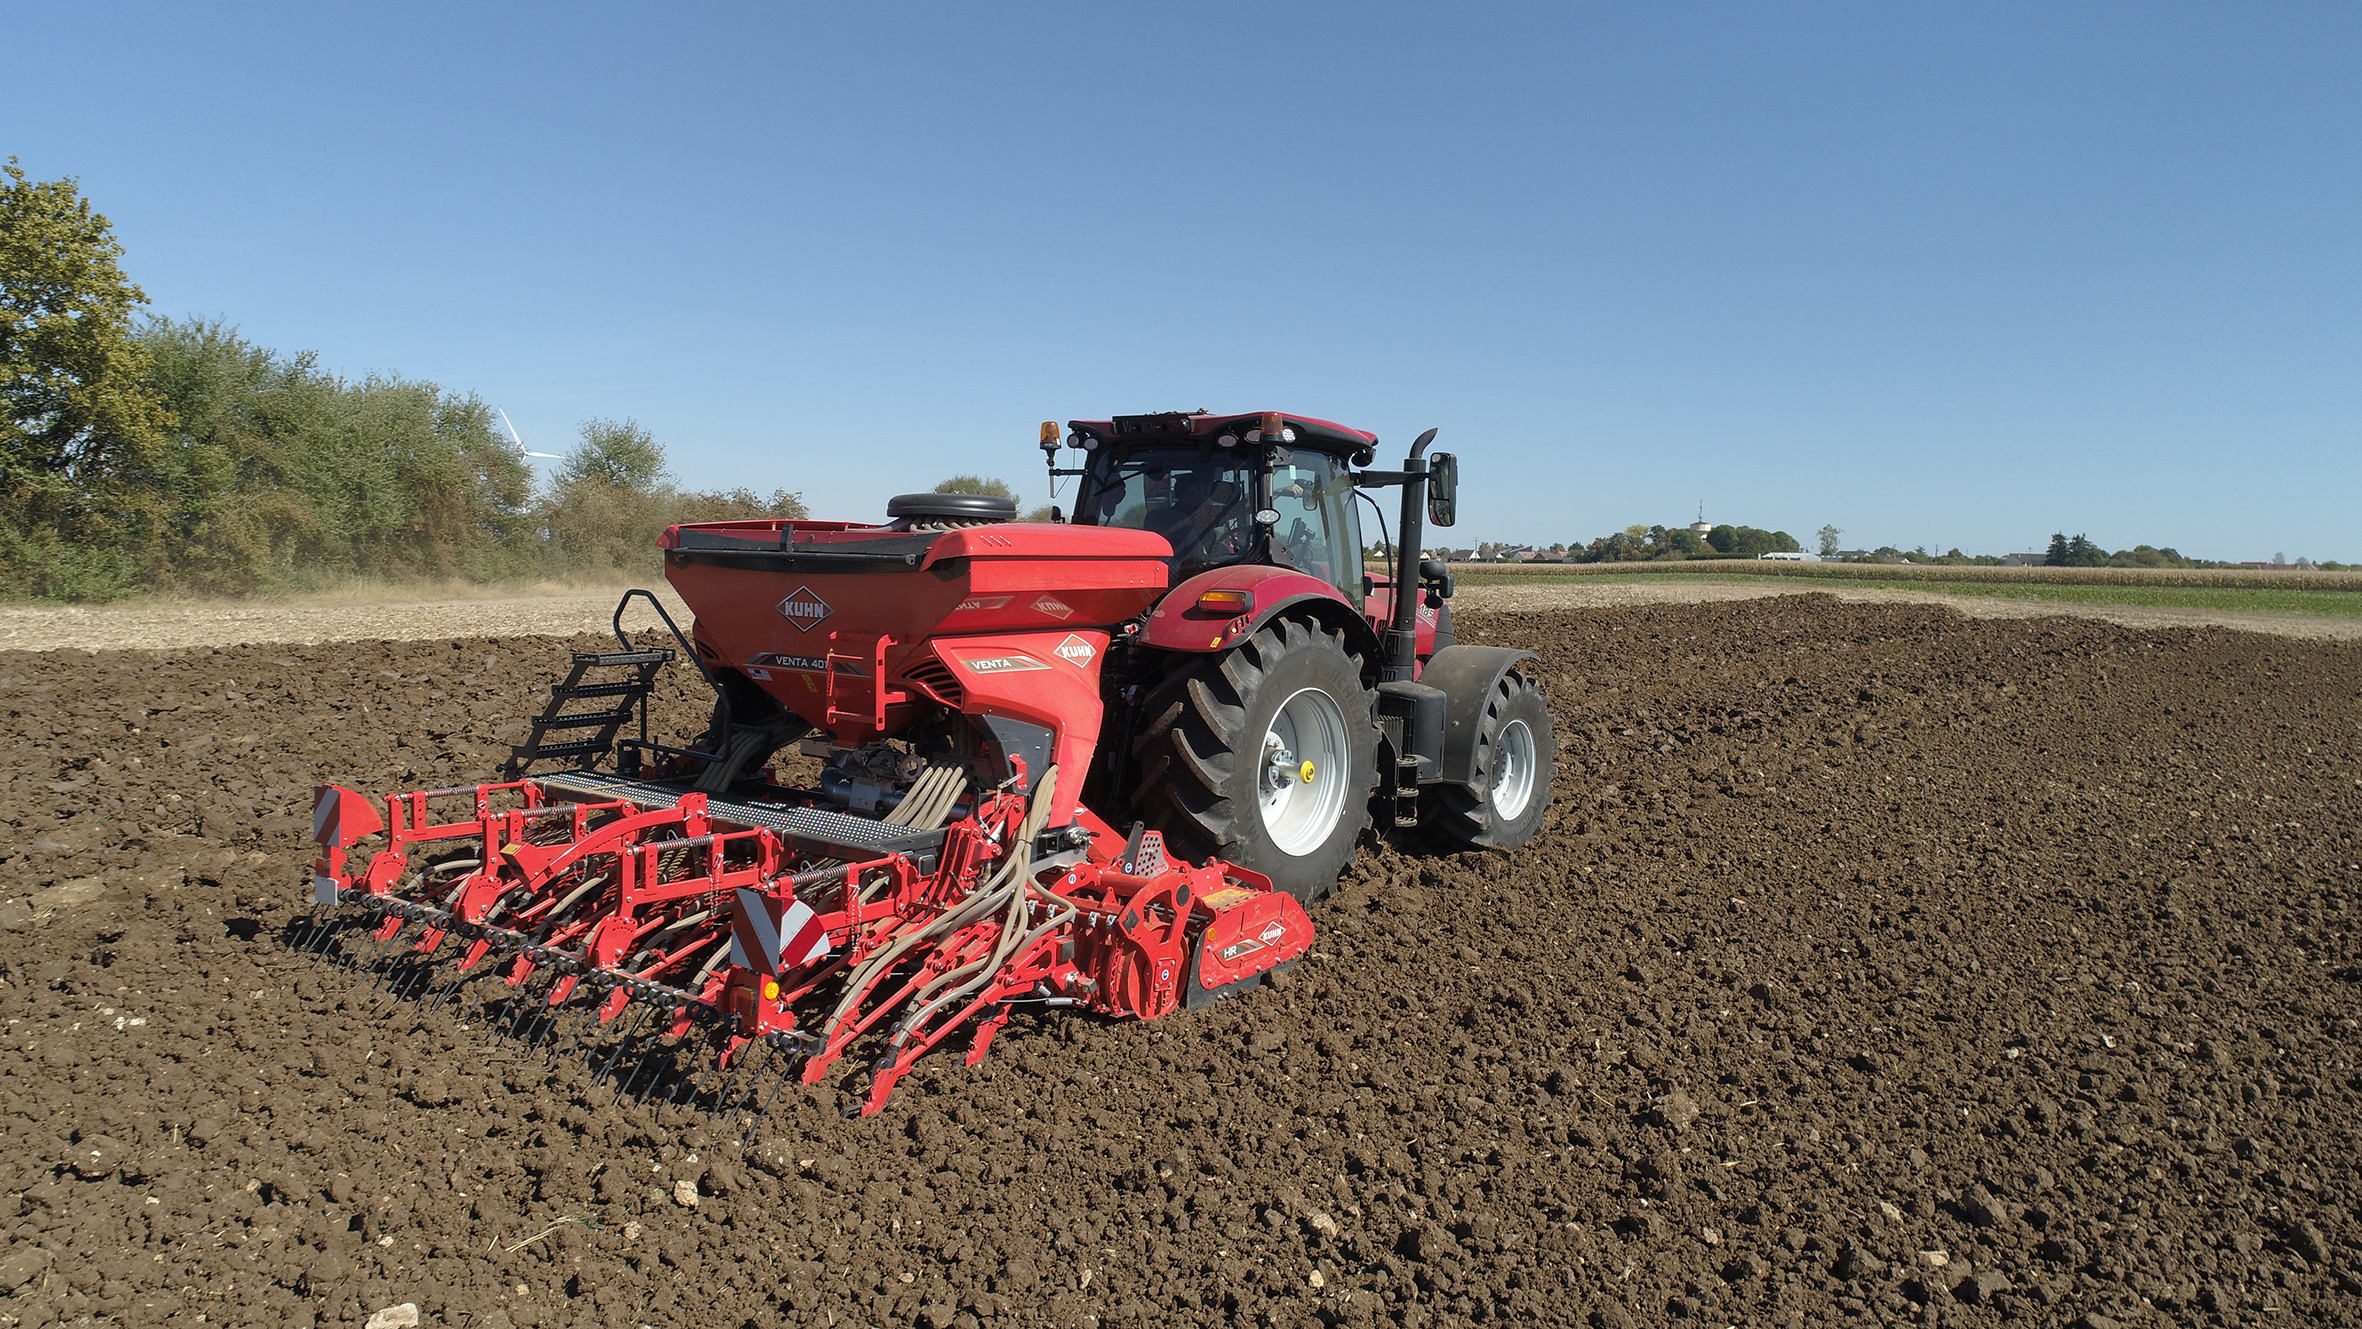 Suffolk coulters for the sowing depth channel for Kuhn's latest 1010 Venta drills